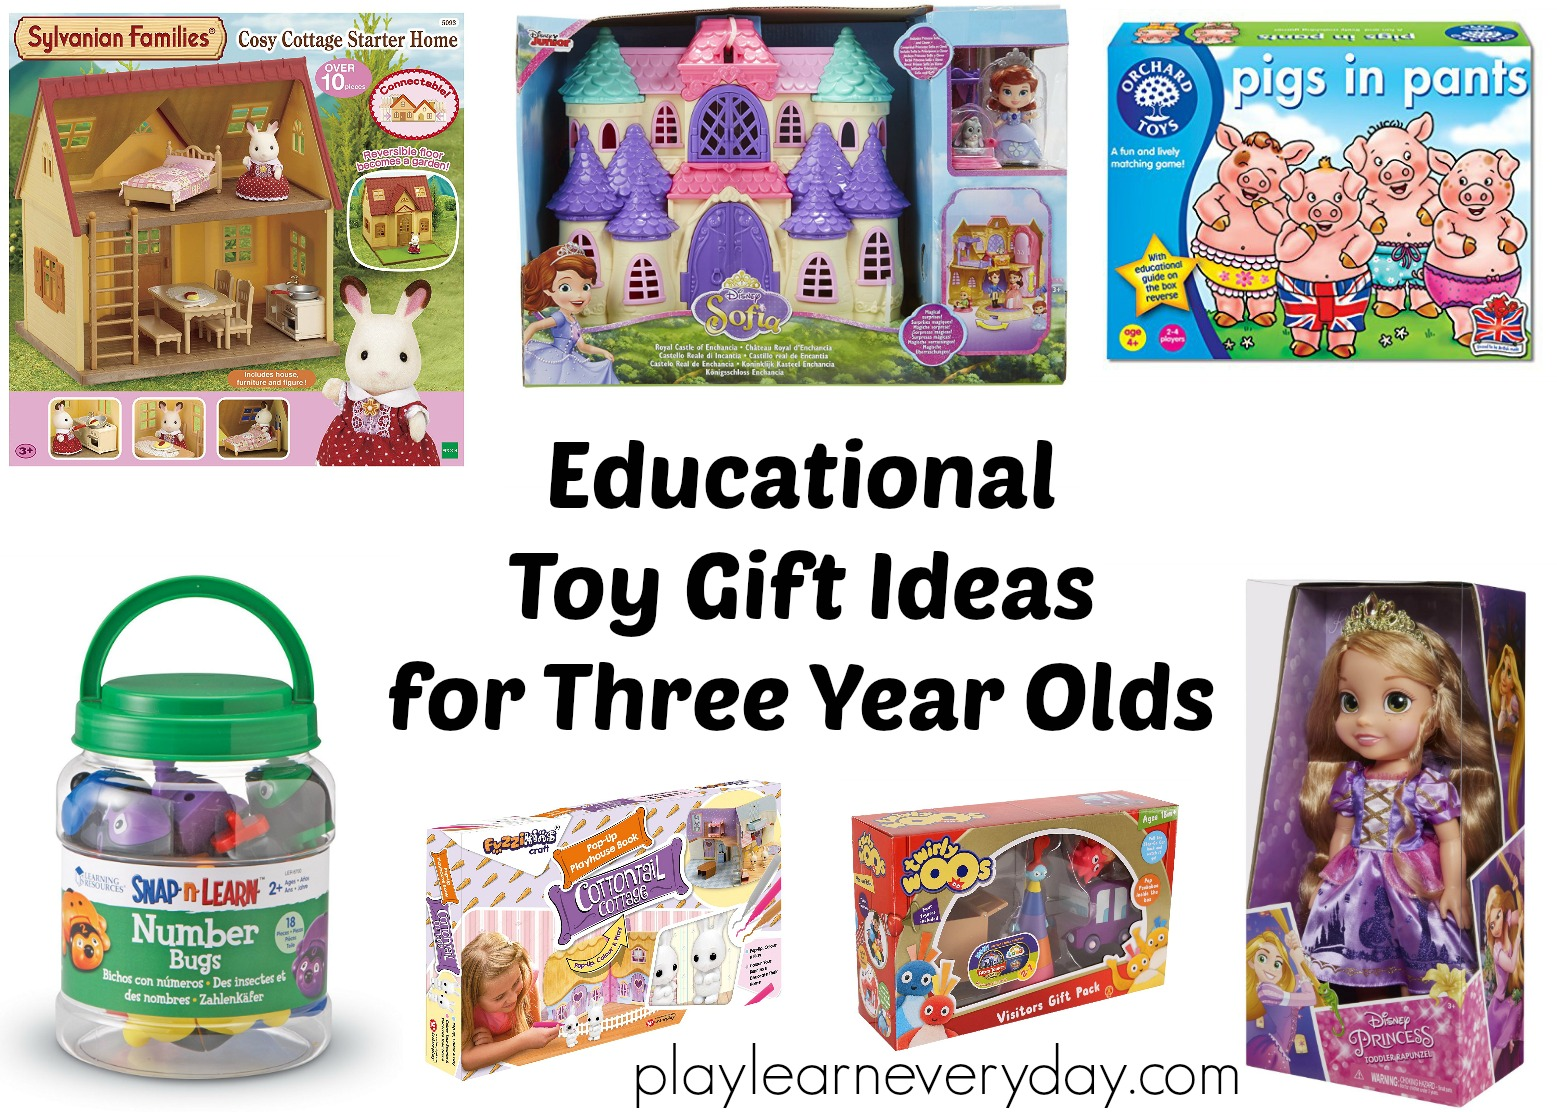 Educational Toy Gift Ideas for 3 Year Olds - Play and ...